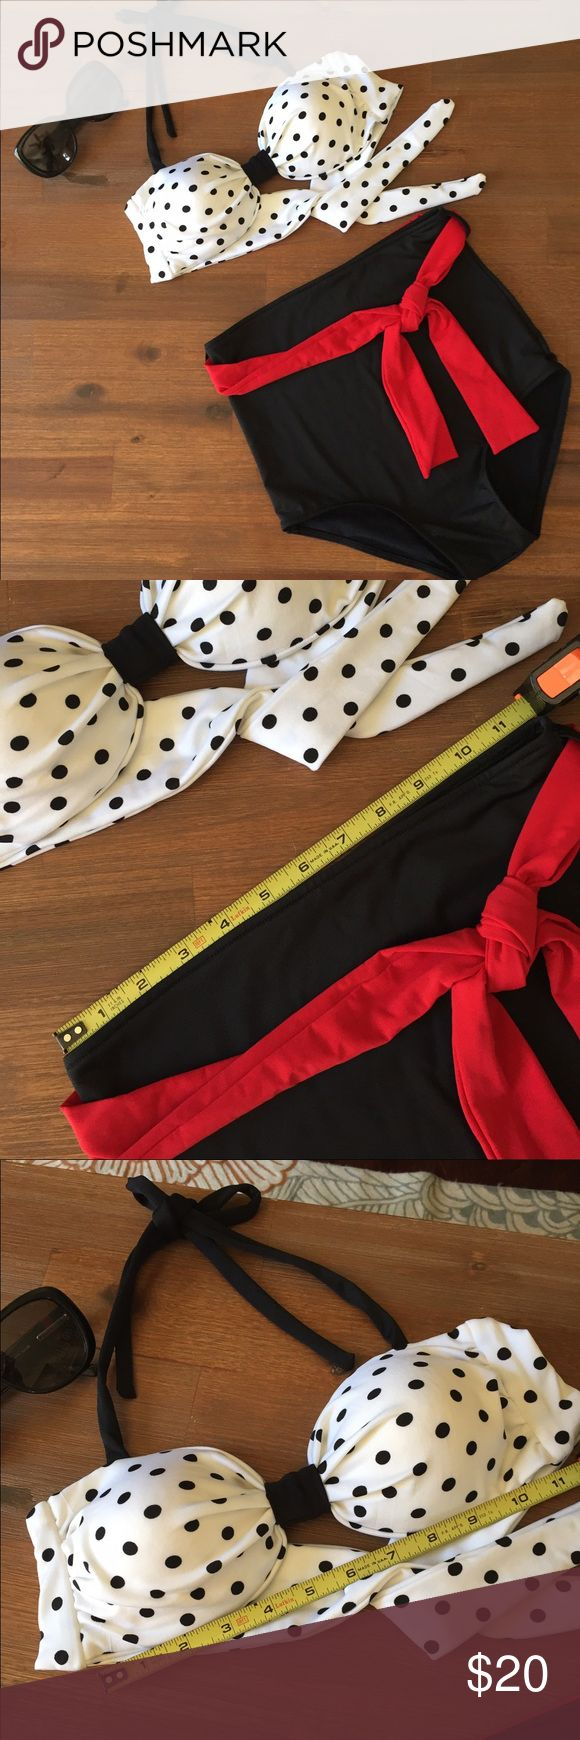 Pinup style bikini Retro Red, White & Navy Blue polka dot high waisted bikini.  Purchased for me as a gift by a friend.  Unfortunately, it's way to small.  No size depicted.  Looks like it would fit a small/medium (possibly A cup or small B).  Never been worn.  *Measurements depicted in photo* Swim Bikinis